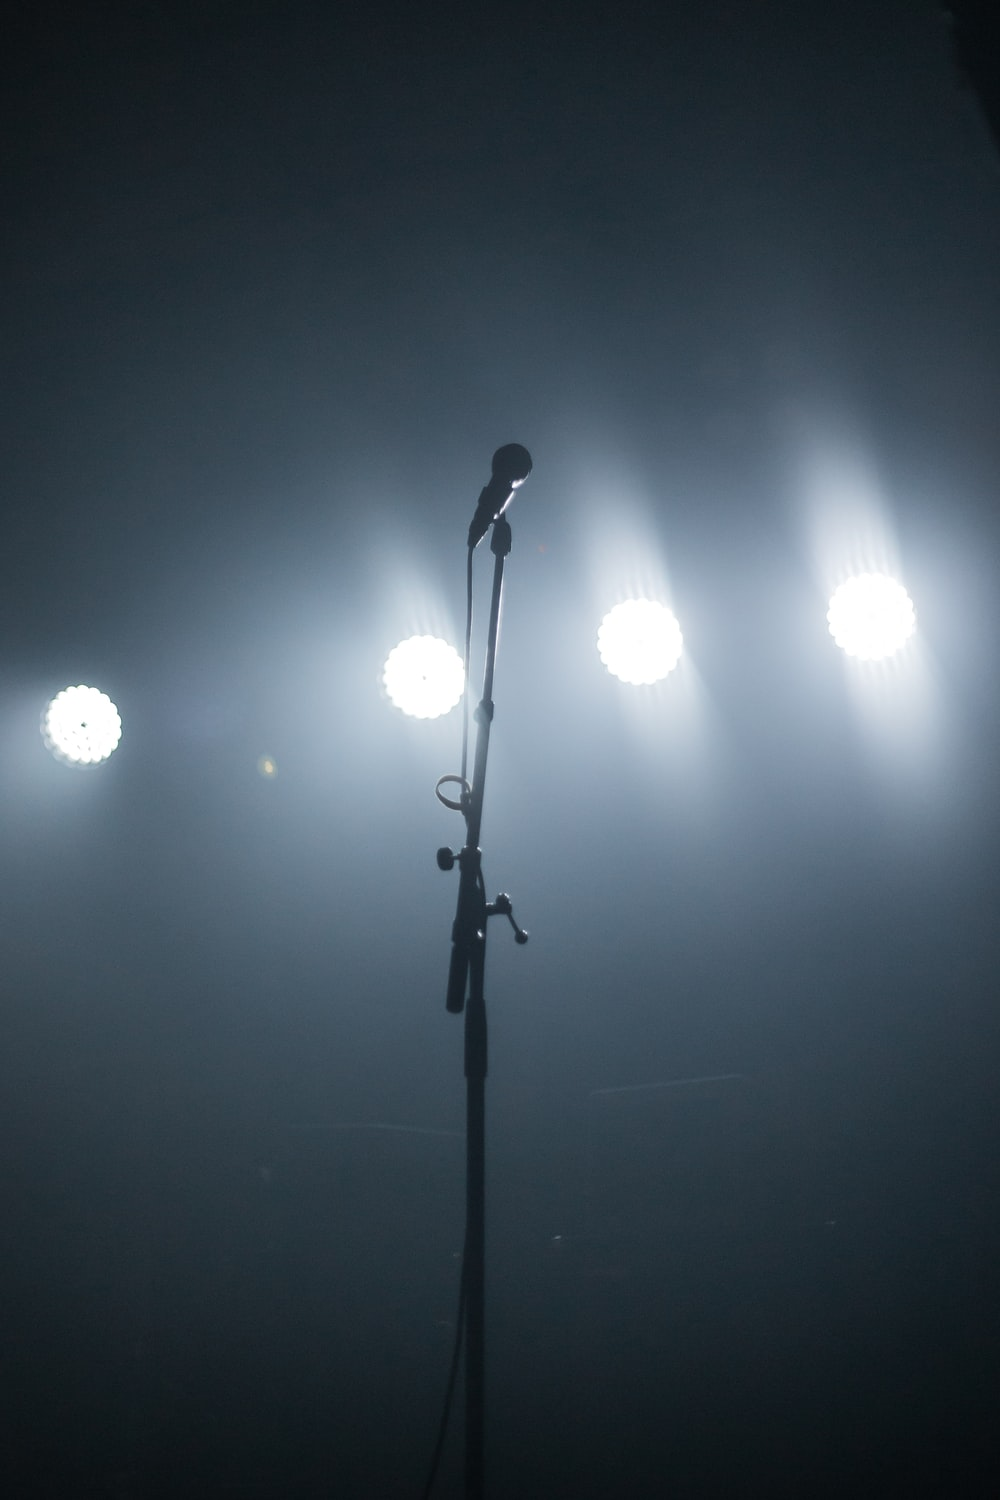 black microphone with stand